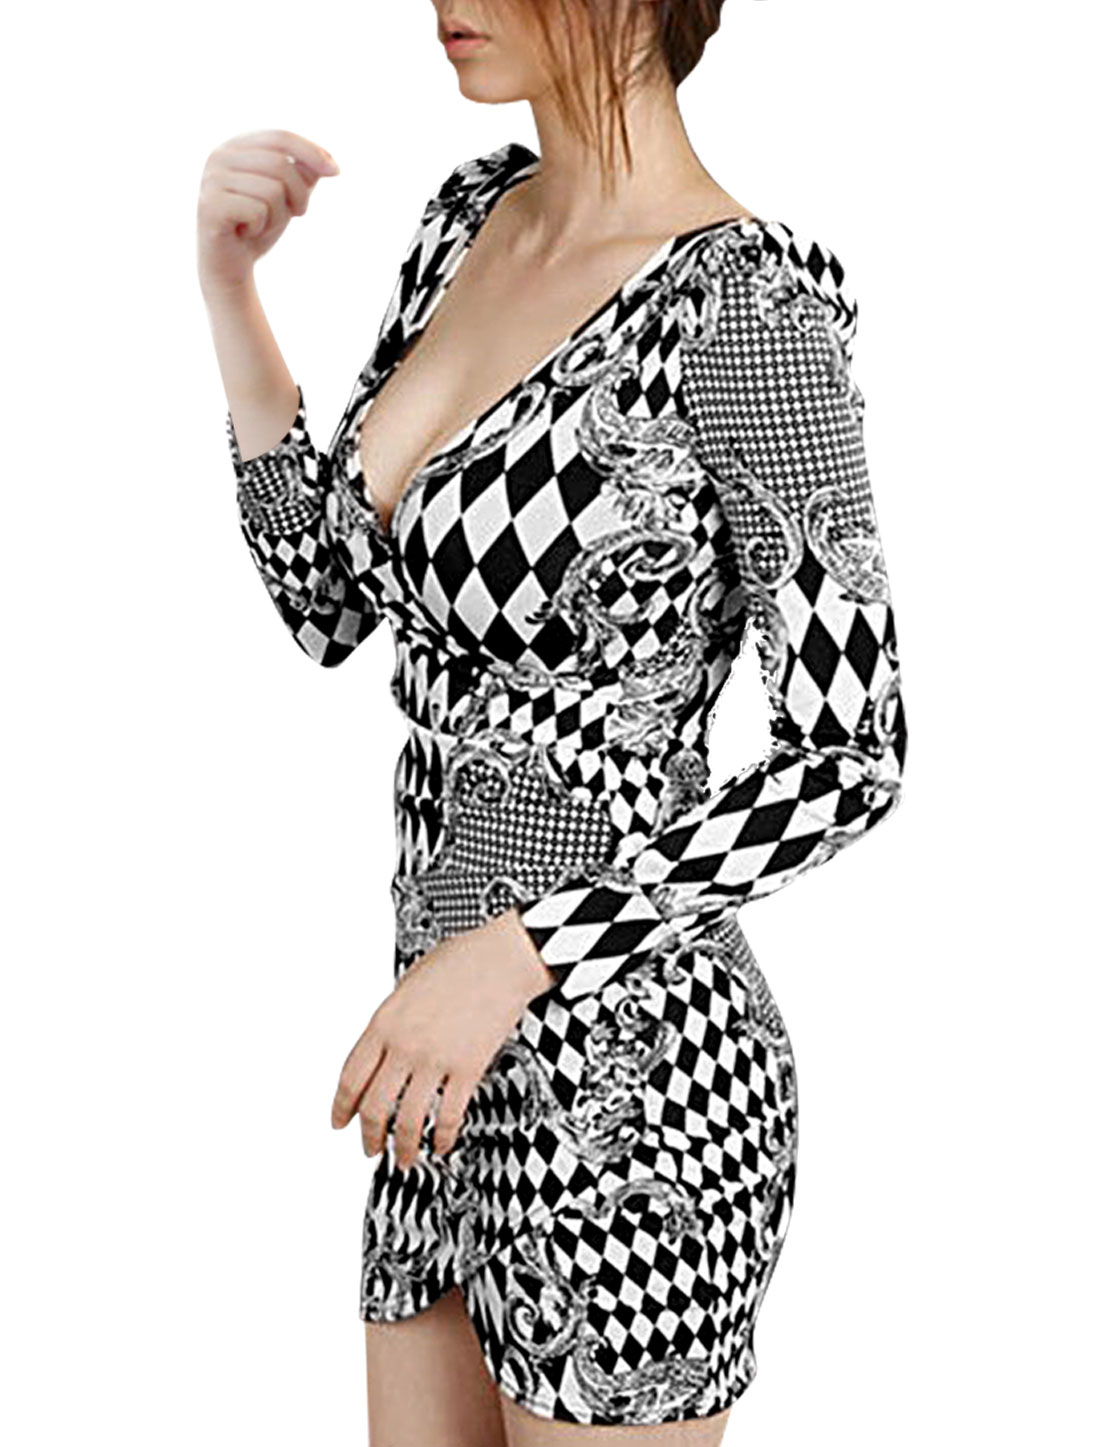 7515 Lady Long Sleeve Argyle Pattern Black White Wrap Sheath Dress/XS (US 0)